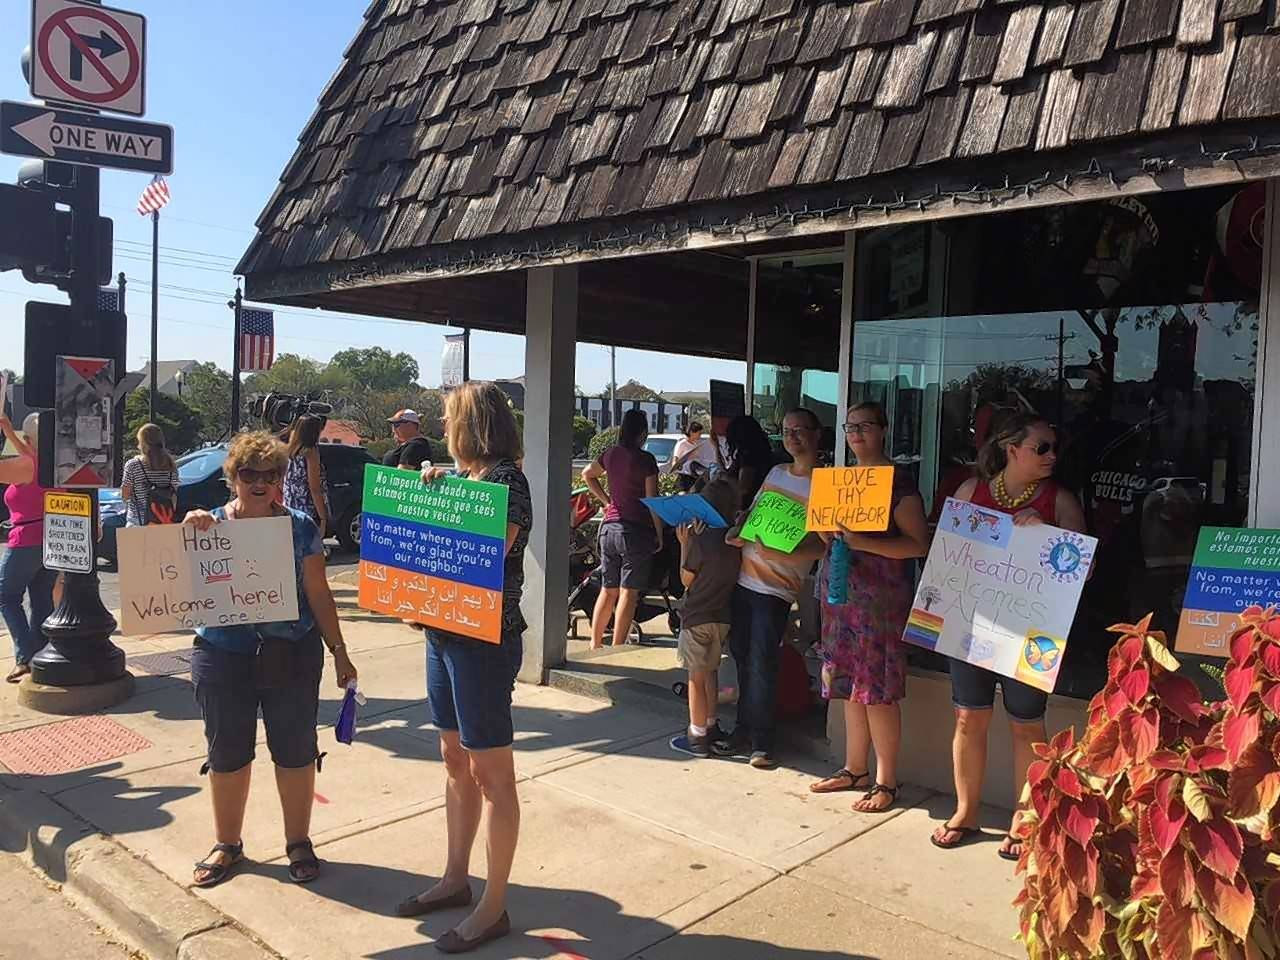 More than 100 people protest Wheaton landlord over 'back to Vietnam' sign